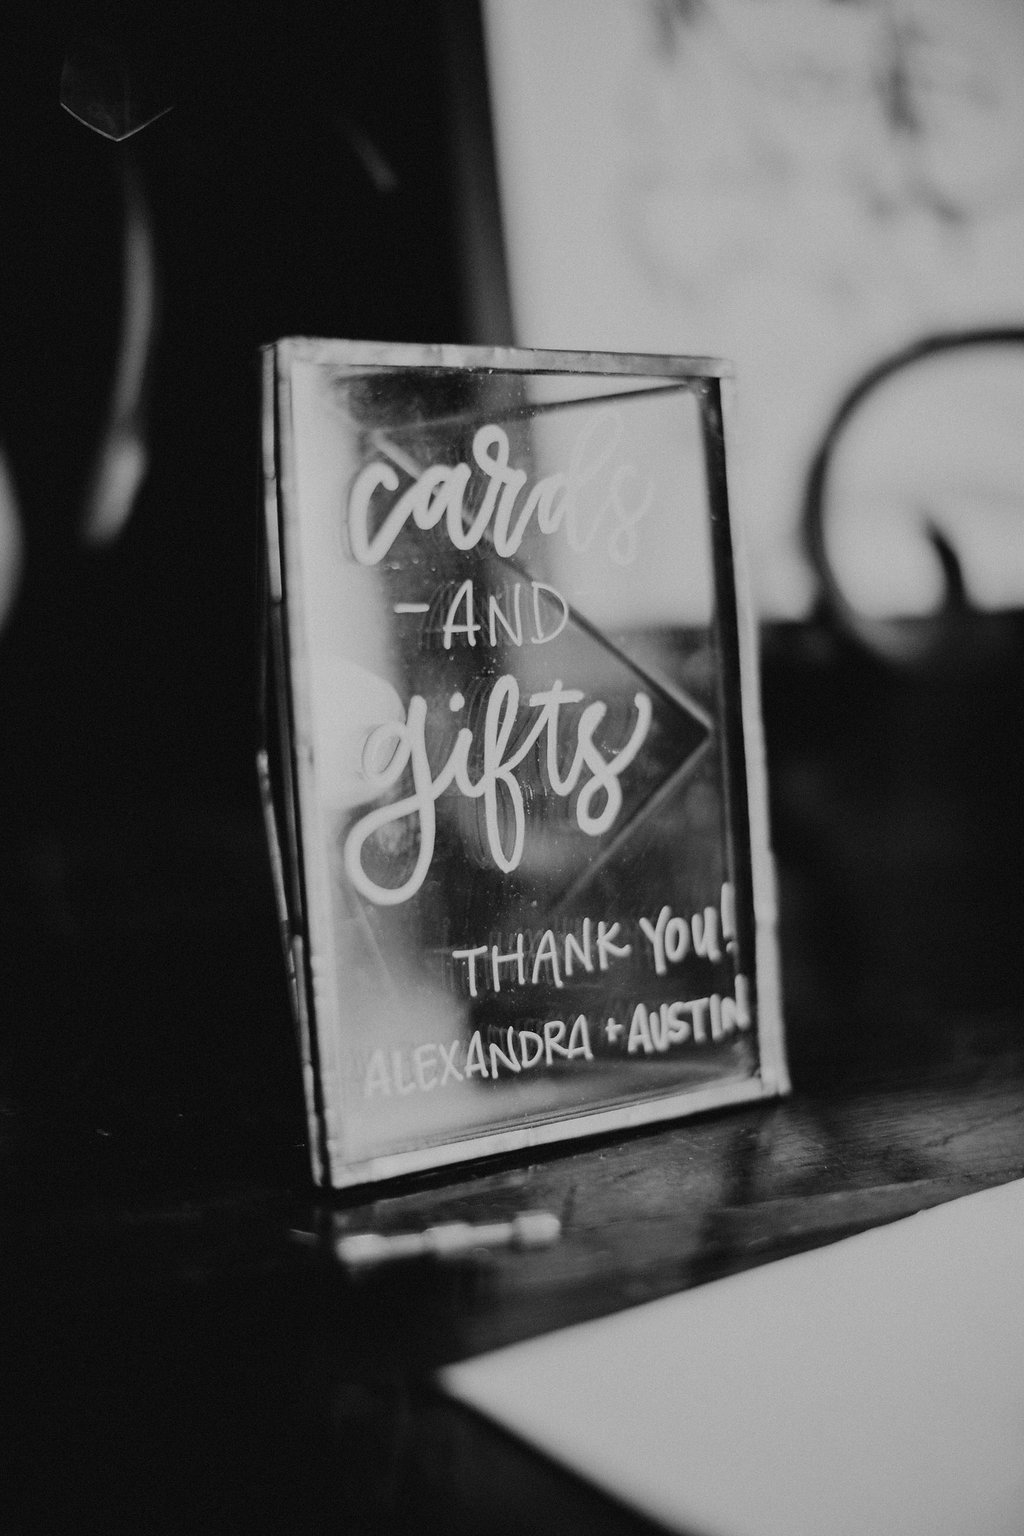 Engaged-Asheville-Joy-Unscripted-Wedding-Calligrapher-Taylor-Heery-Photography-2.jpg